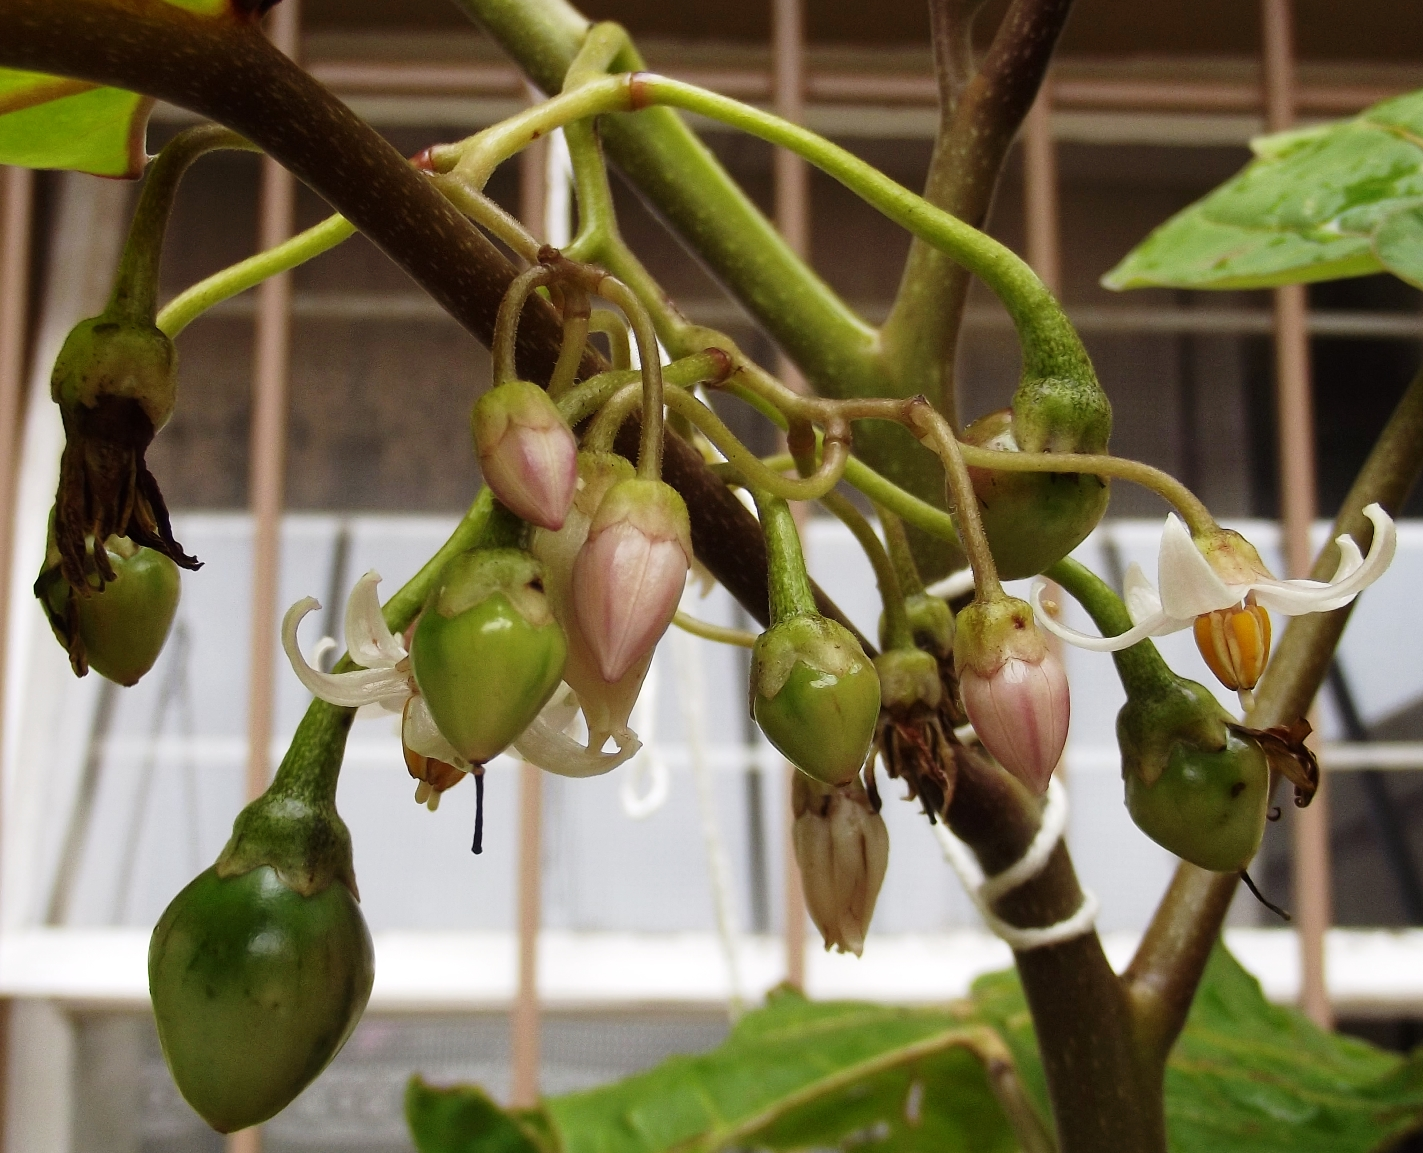 Tamarillo Flowers and fruits various stages Solanum betaceum developing tree tomato